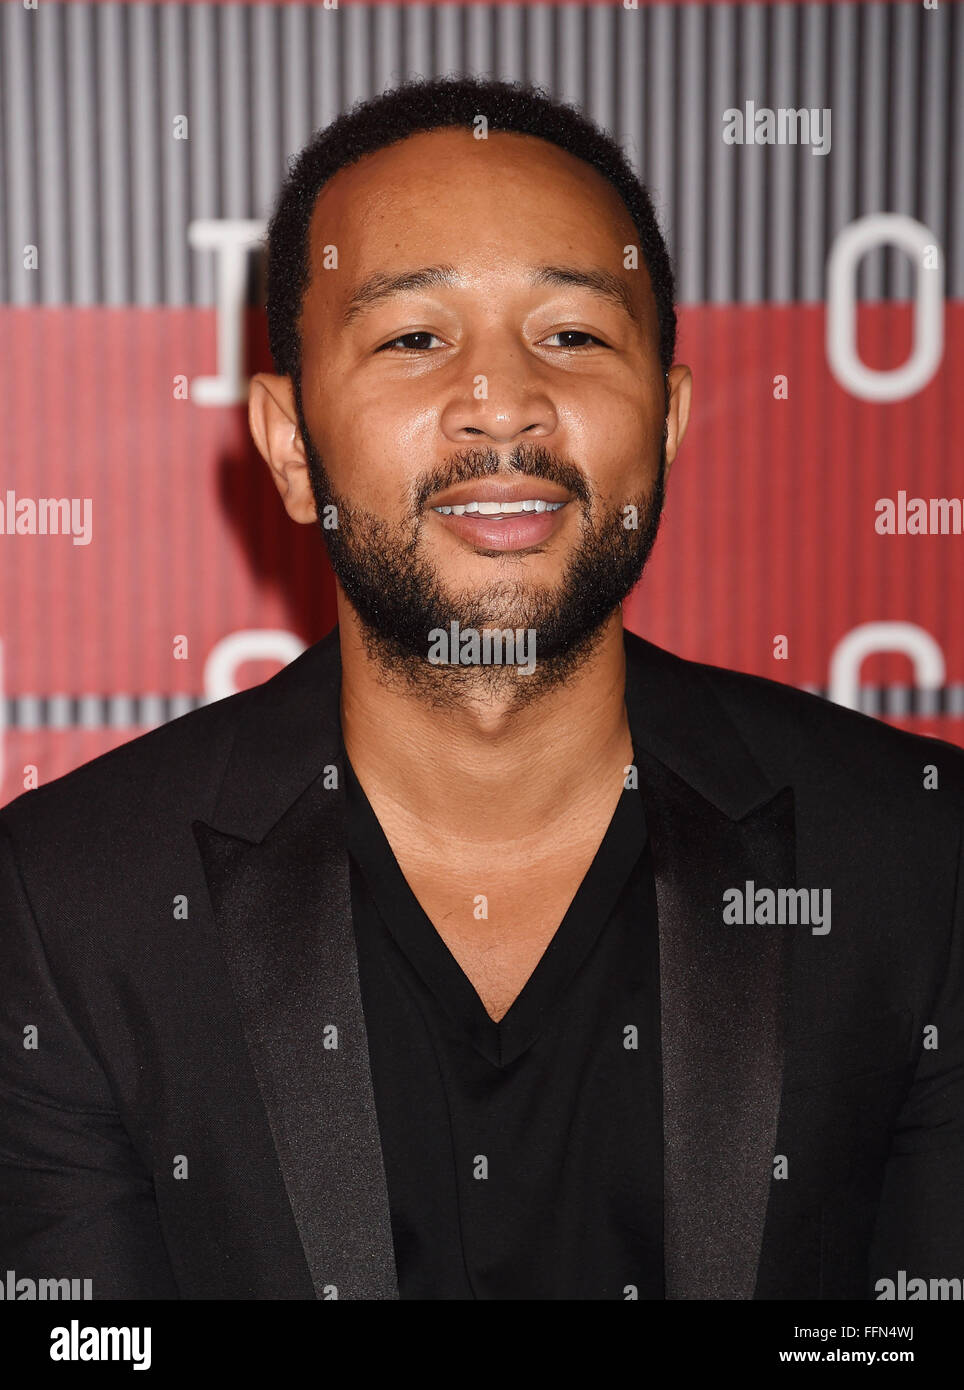 JOHN LEGEND arrives at the 2015 MTV Video Music Awards at Microsoft Theater on August 30, 2015 in Los Angeles, California., - Stock Image